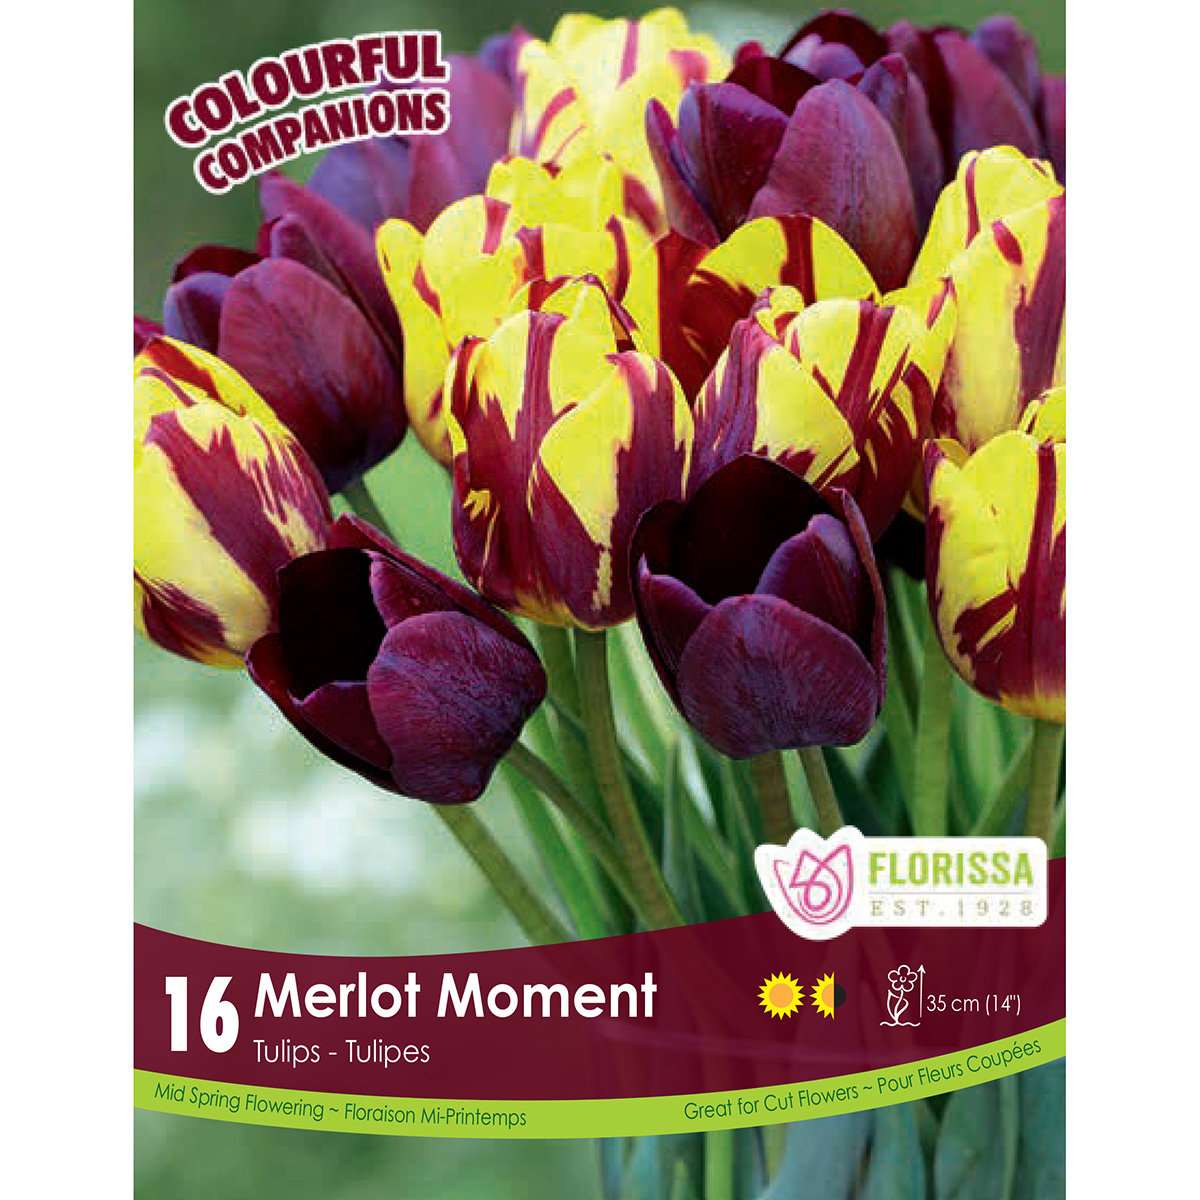 Colourful Companions Tulipa 'Merlot Moment' Bulbs